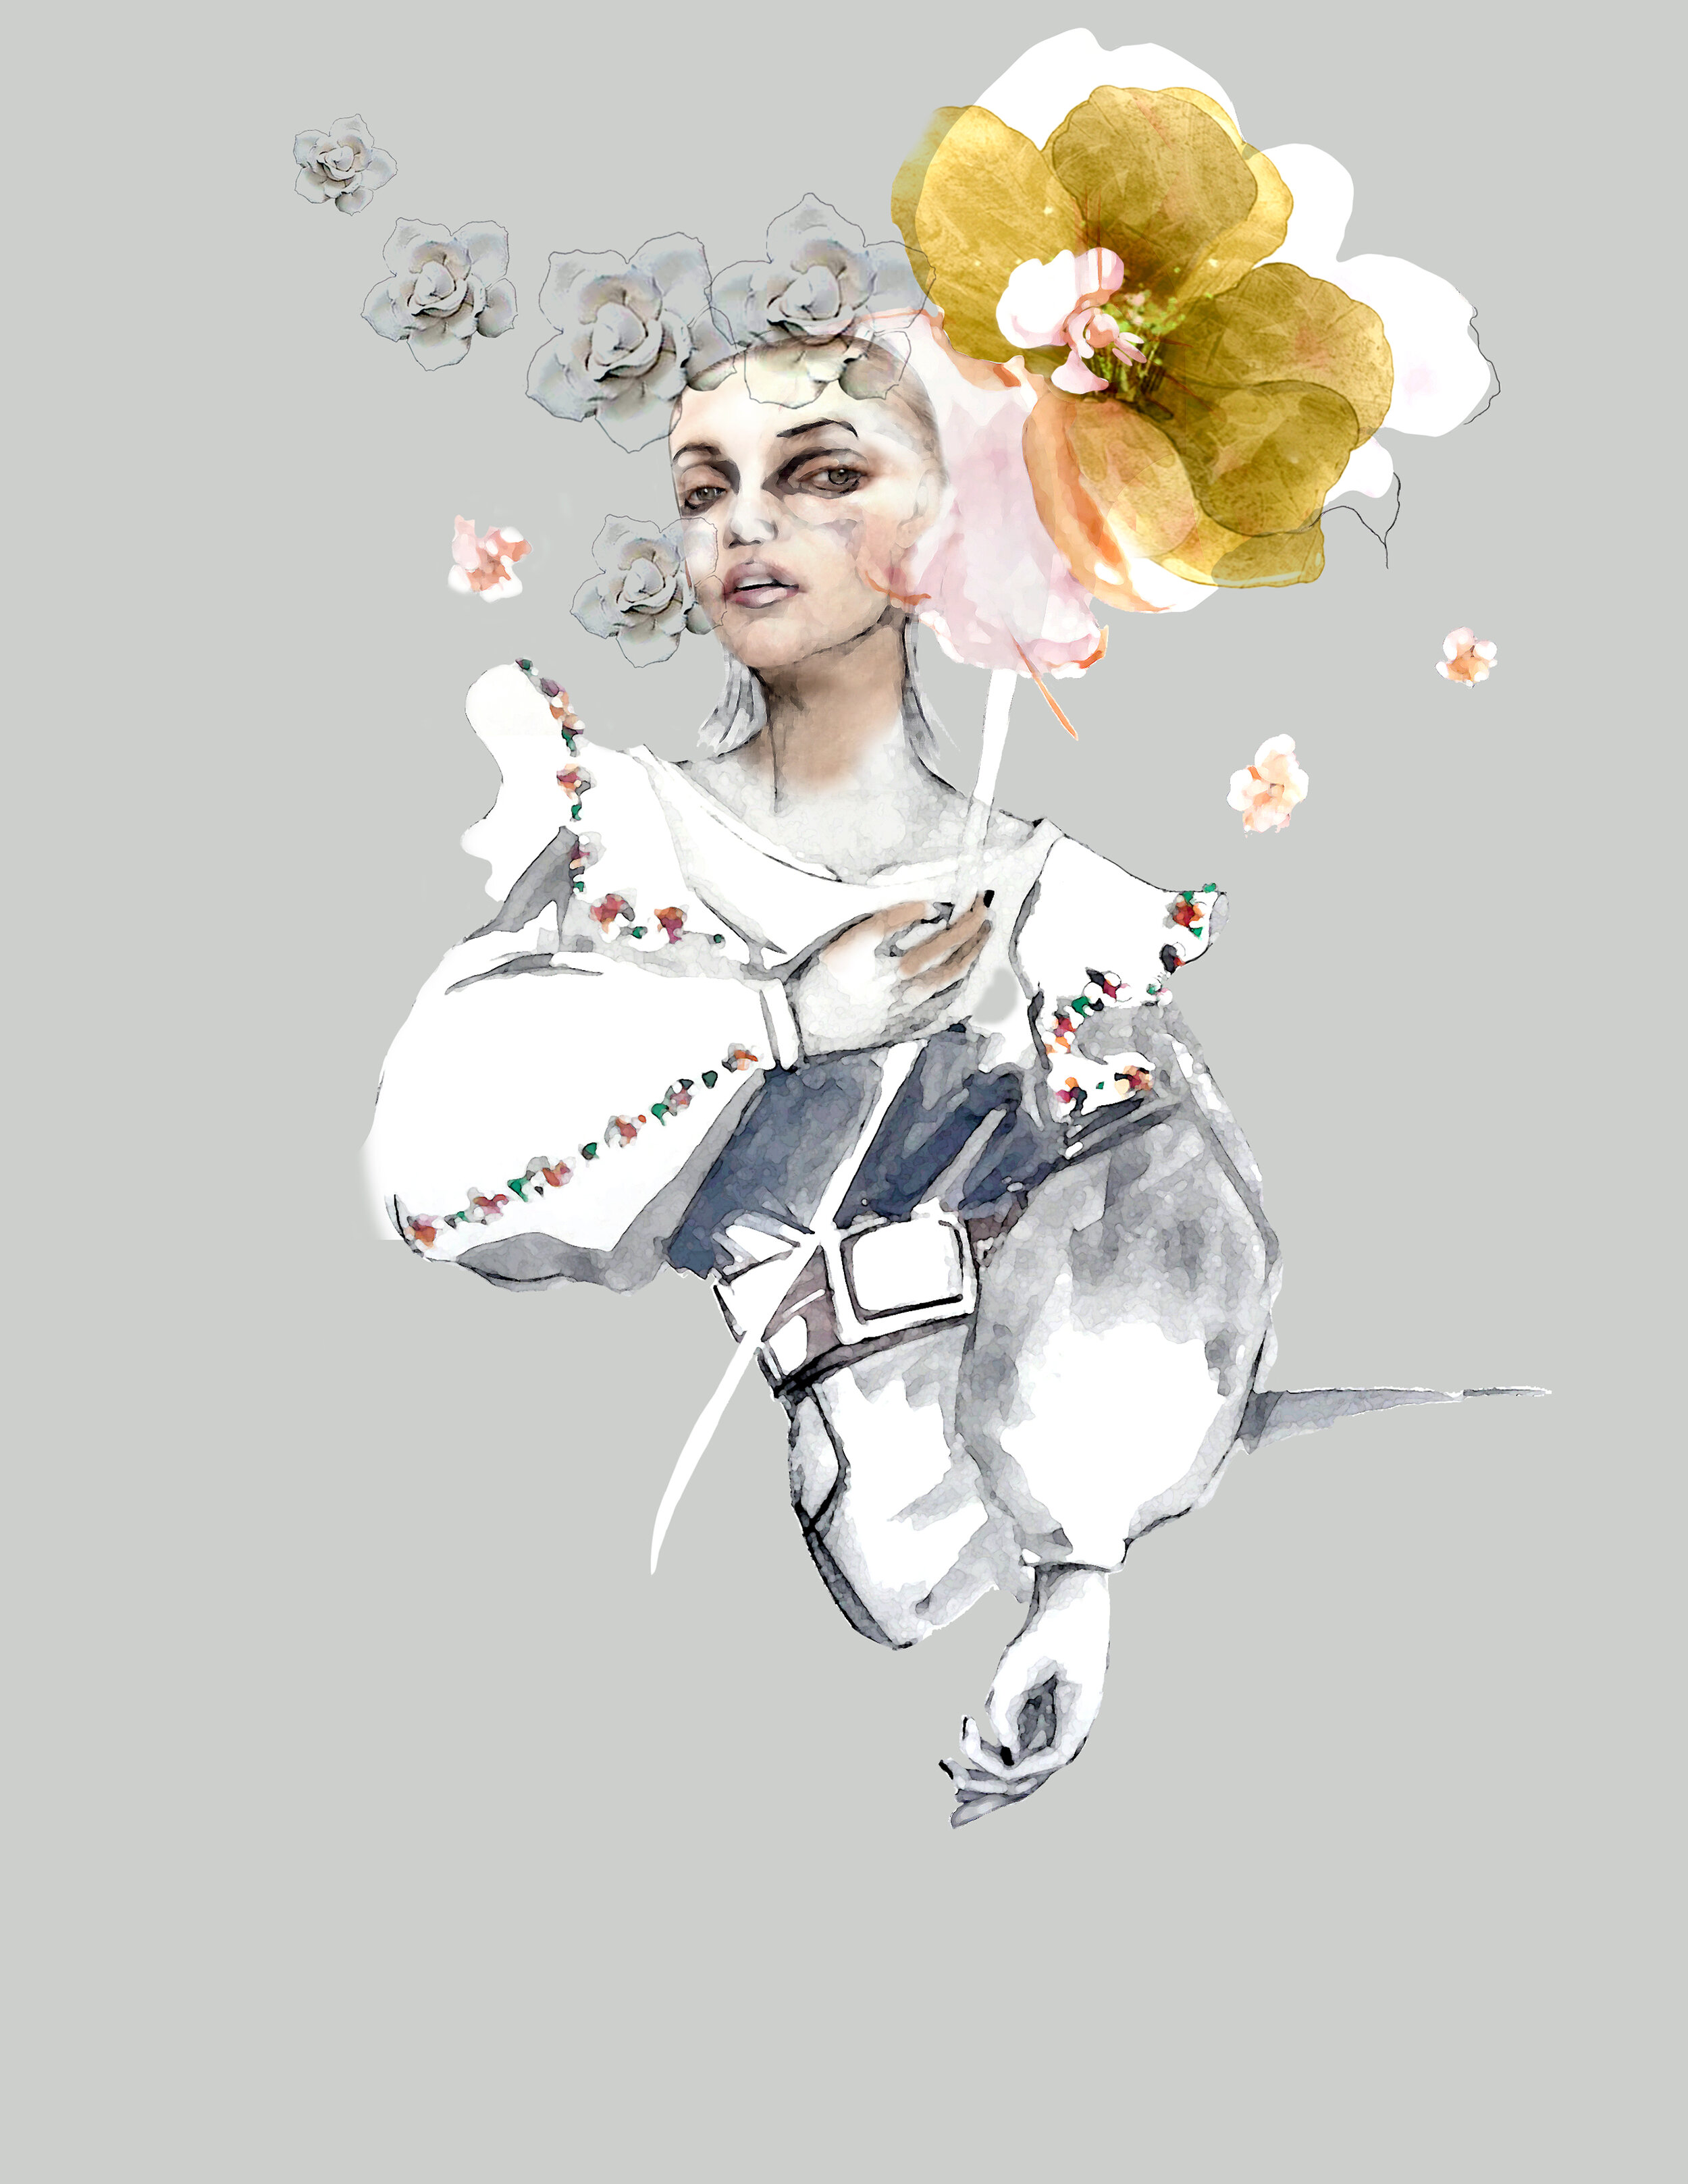 Watercolor fashion Illustration - It is designed so that you can photoshop your own handbag into her hand.